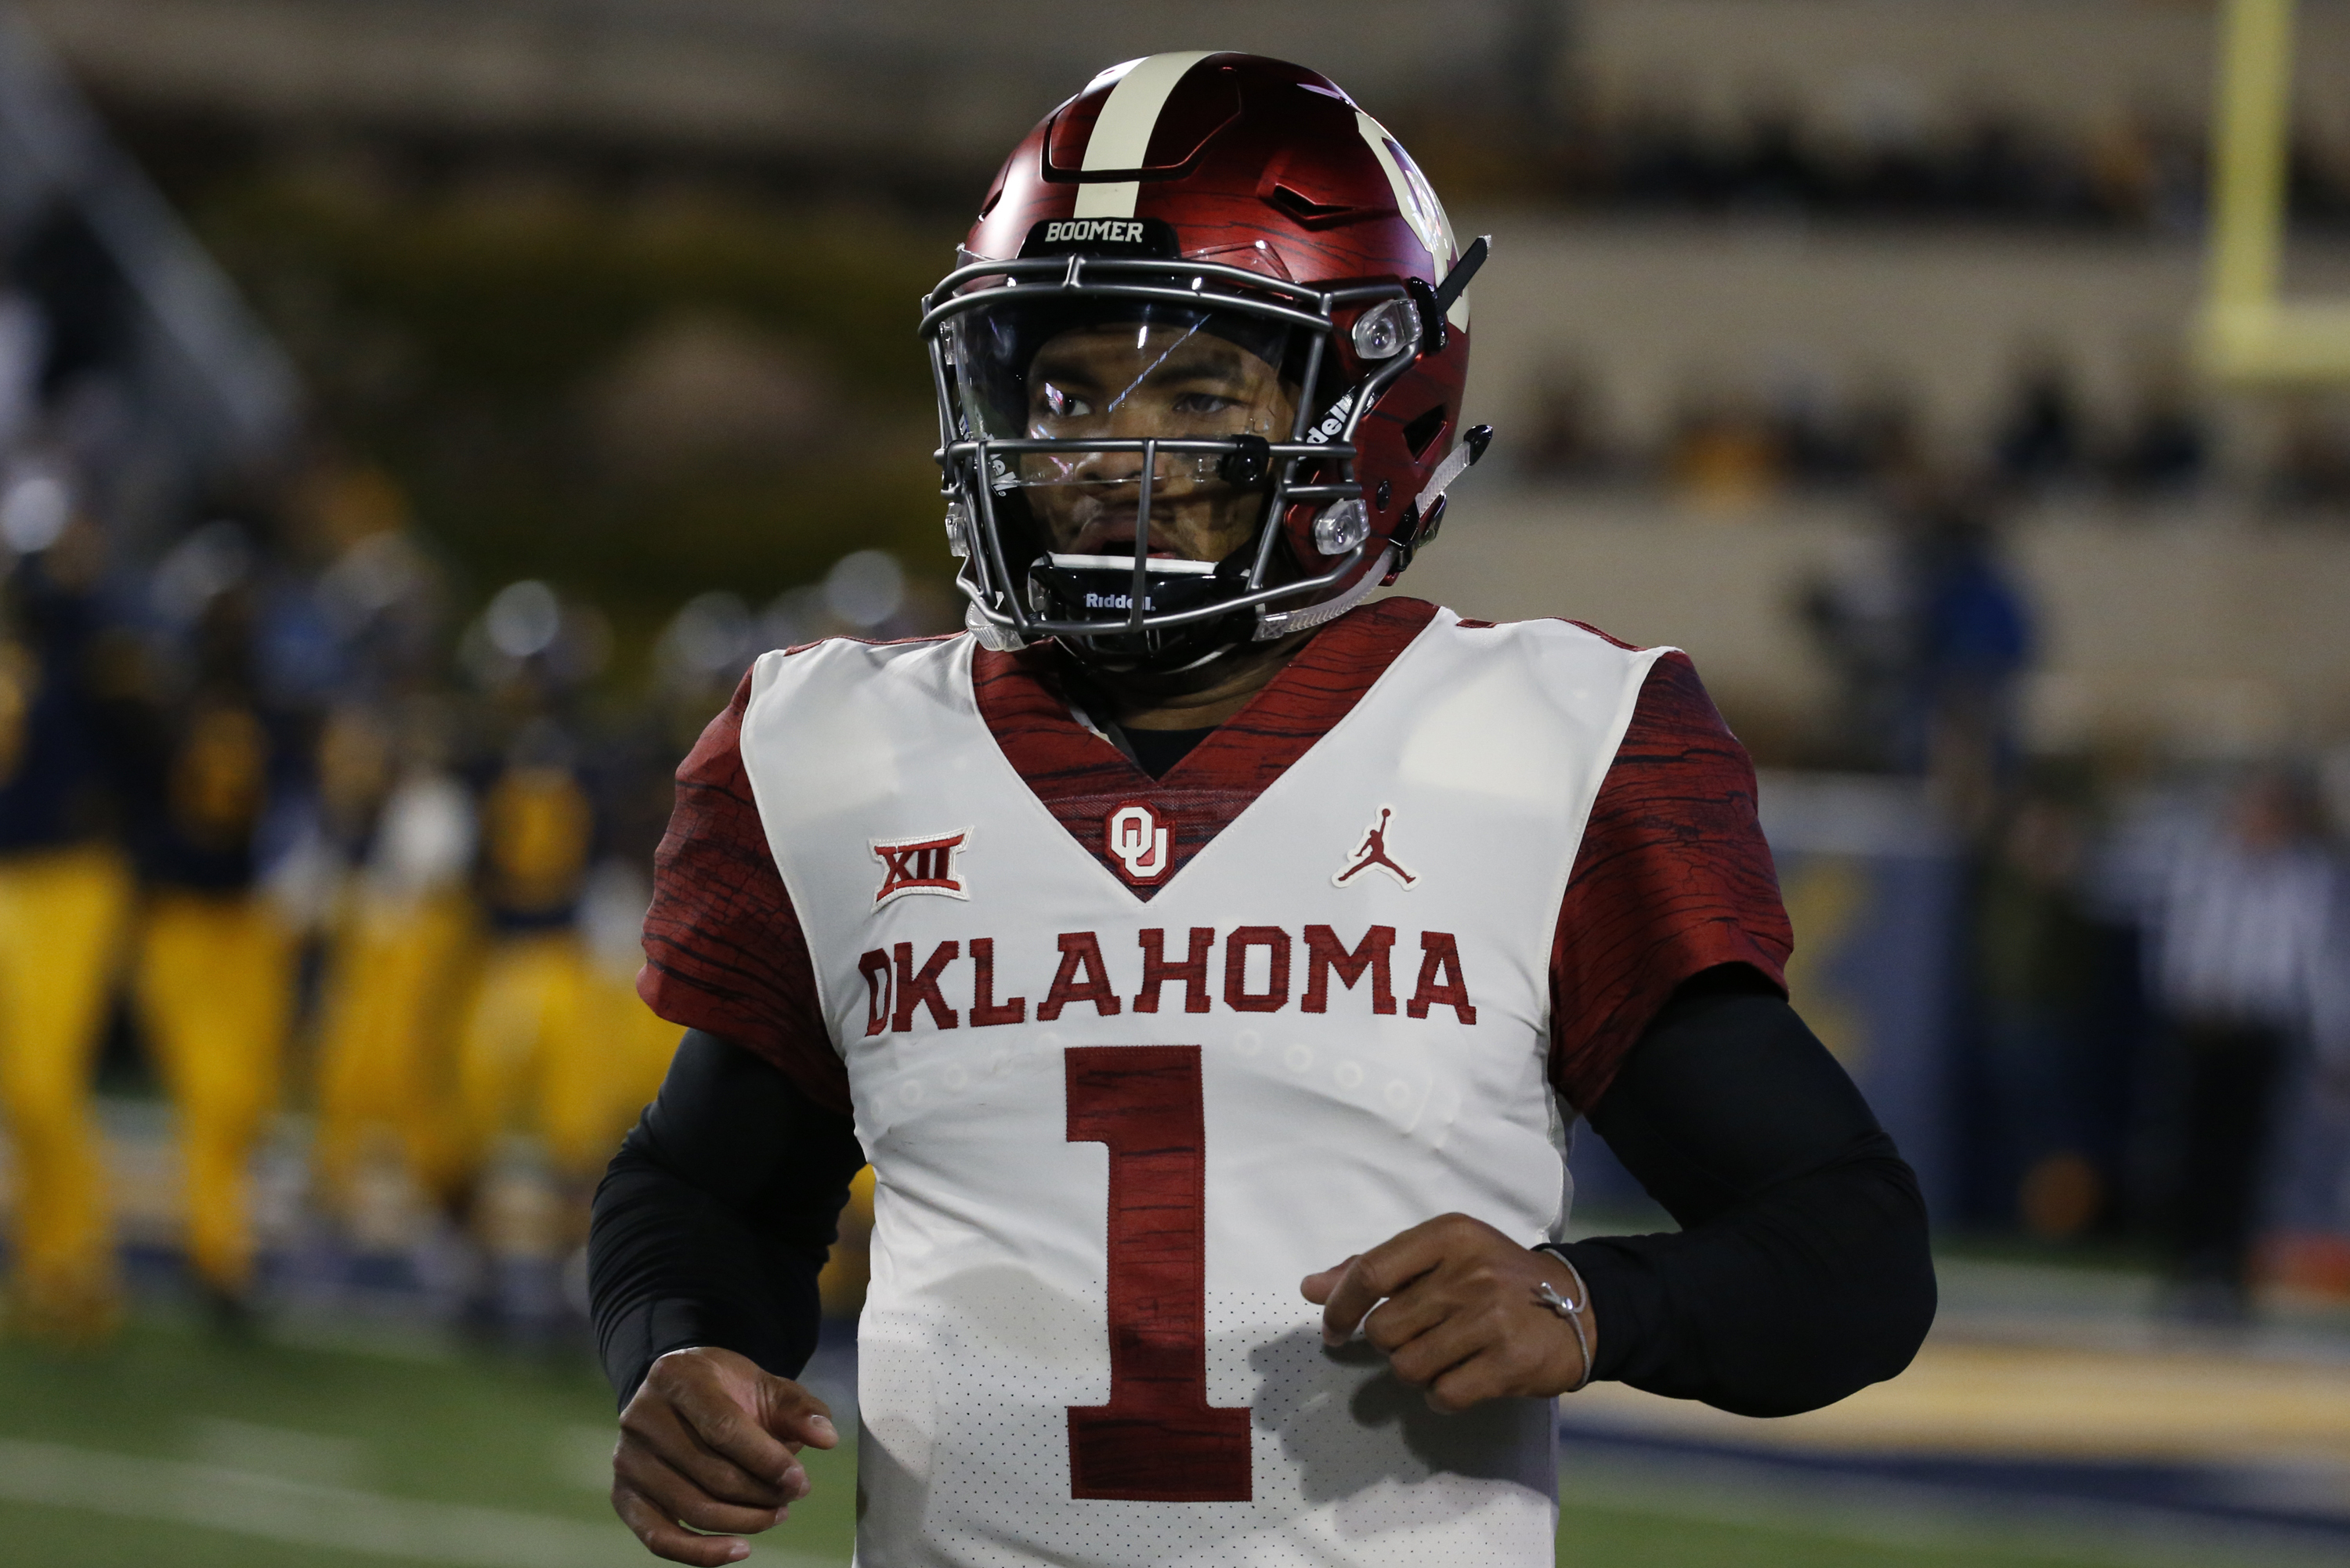 Kyler Murray Wins 2018 Heisman Trophy over Tua Tagovailoa